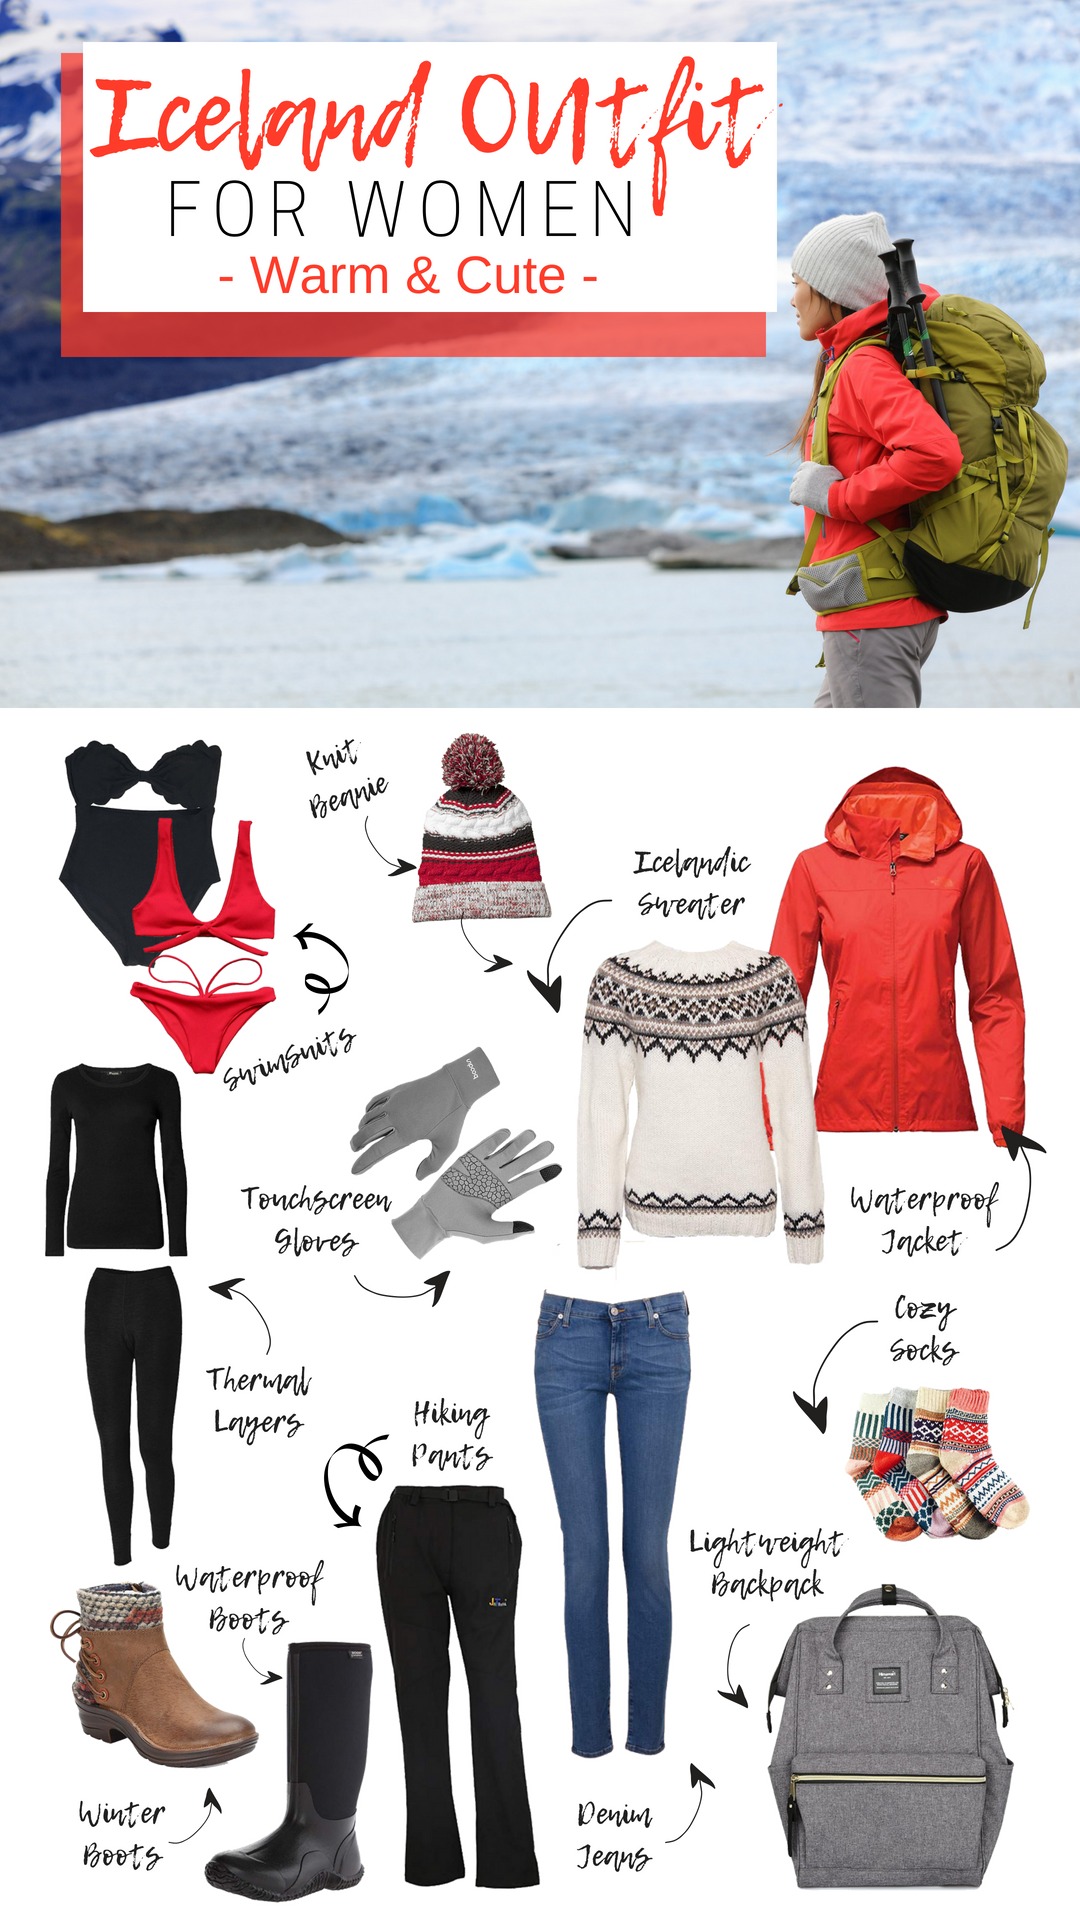 Packing List for Winter: Women's Edition Iceland outfit for women. It's possible to look cute while still staying warm. PIN and shop these cute outfit ideas! //Iceland outfit for women. It's possible to look cute while still staying warm. PIN and shop these cute outfit ideas! //